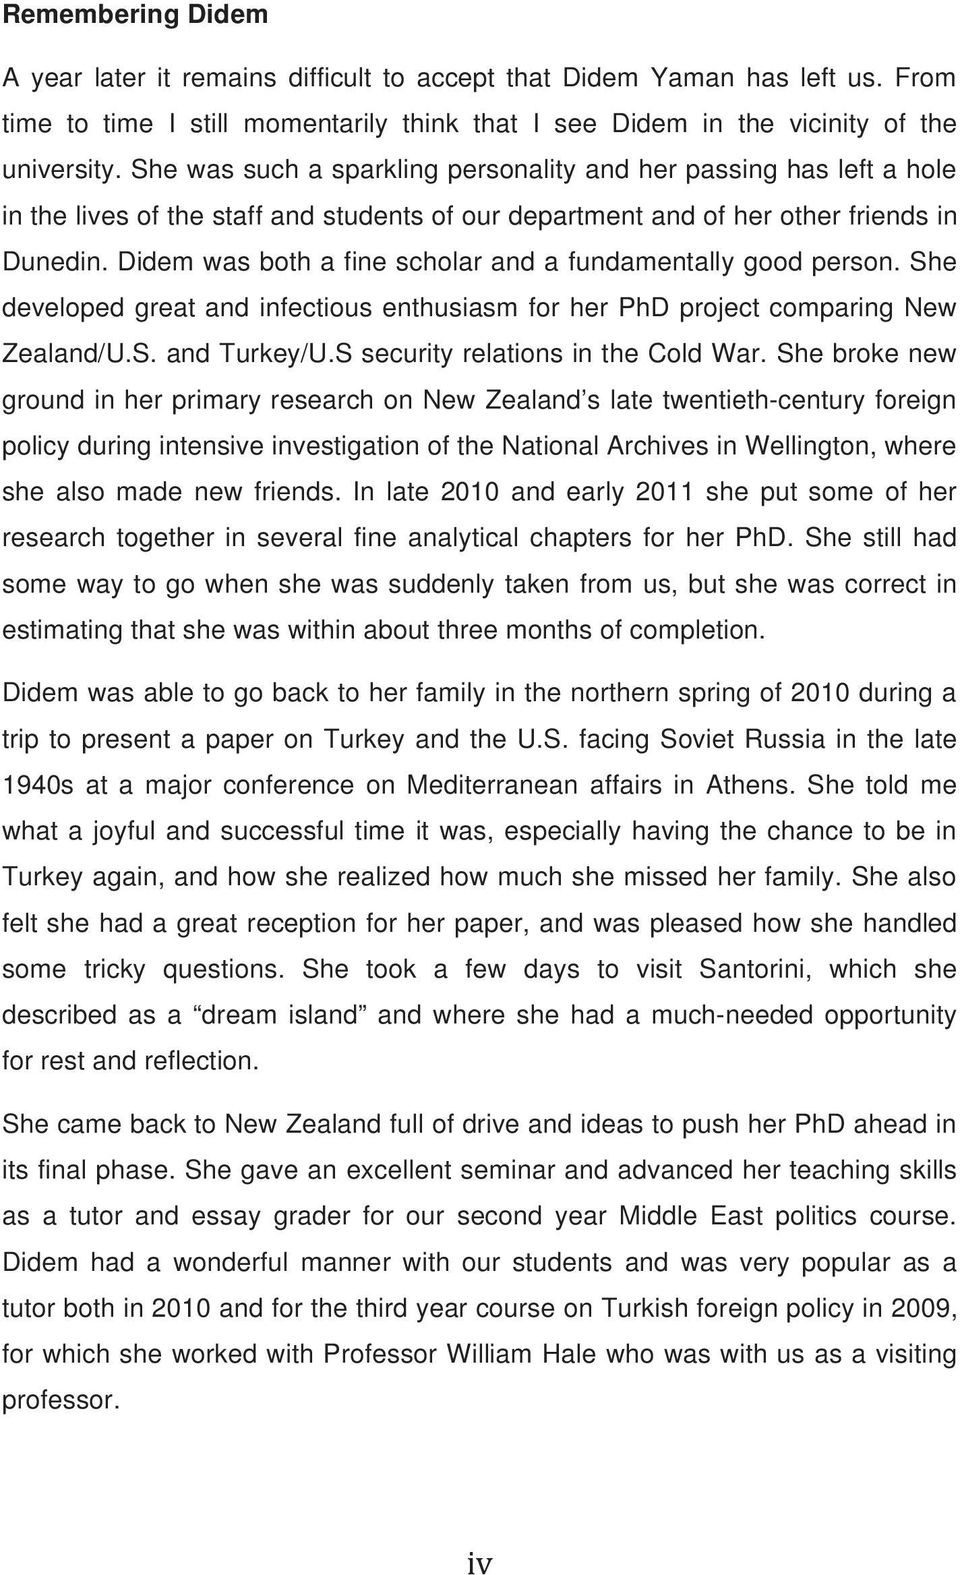 Didem was both a fine scholar and a fundamentally good person. She developed great and infectious enthusiasm for her PhD project comparing New Zealand/U.S. and Turkey/U.